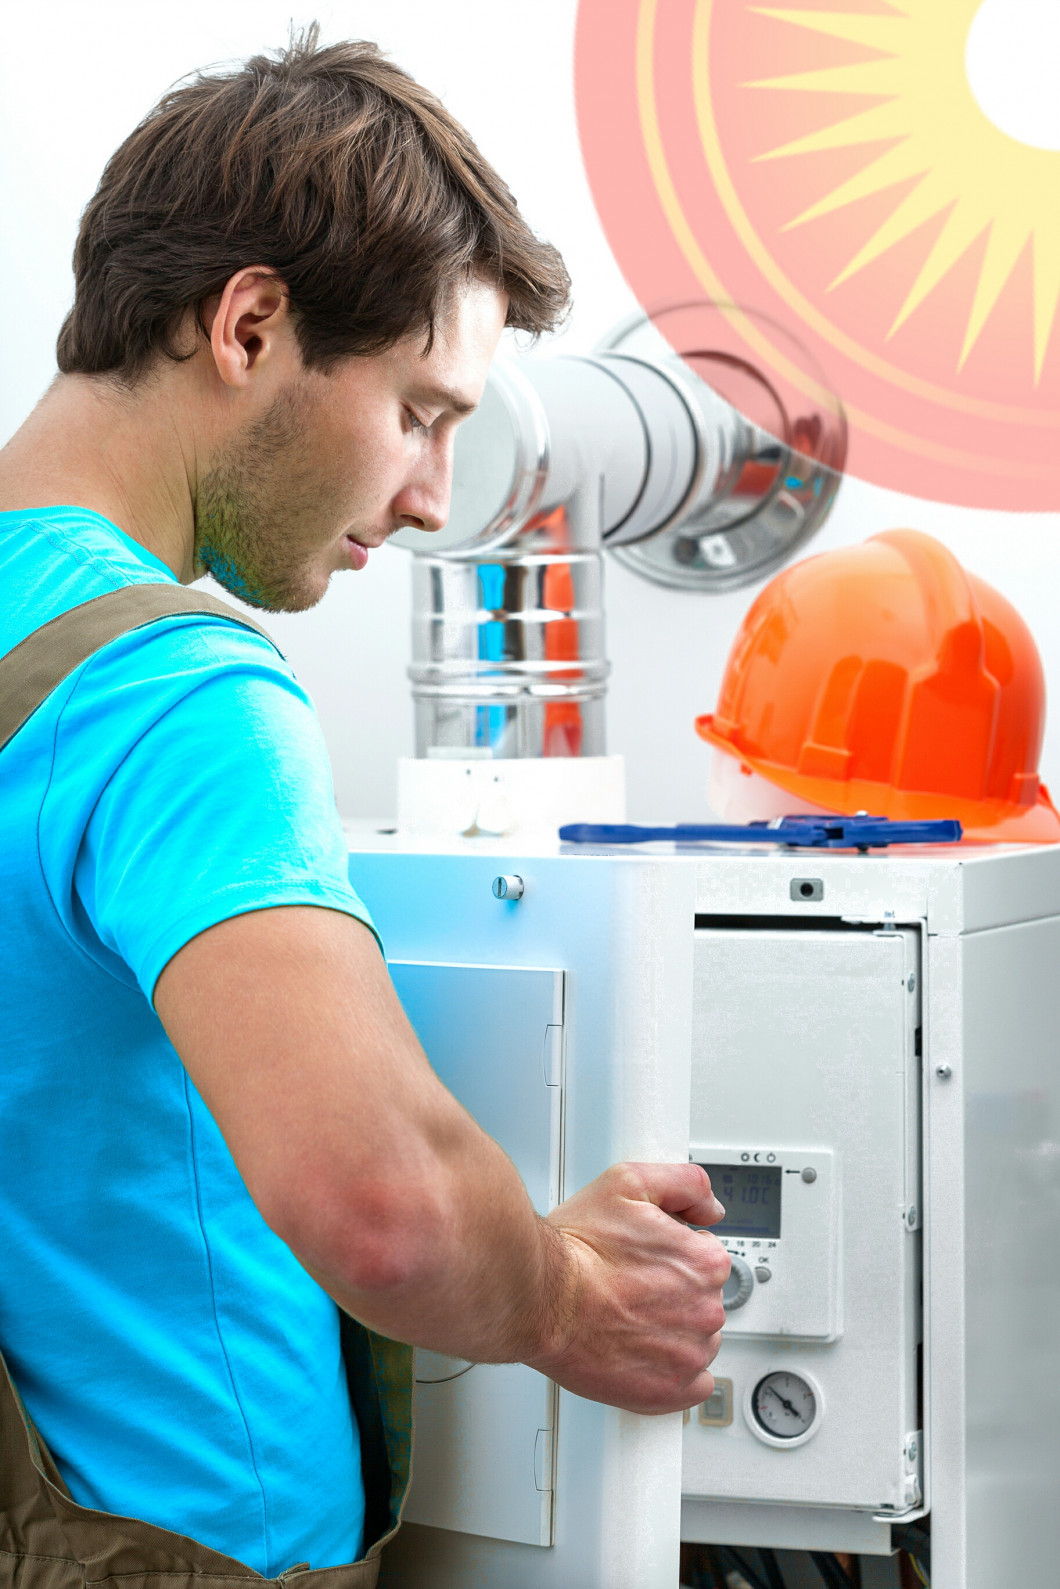 Rely on a Trained Specialist for Your Furnace Services